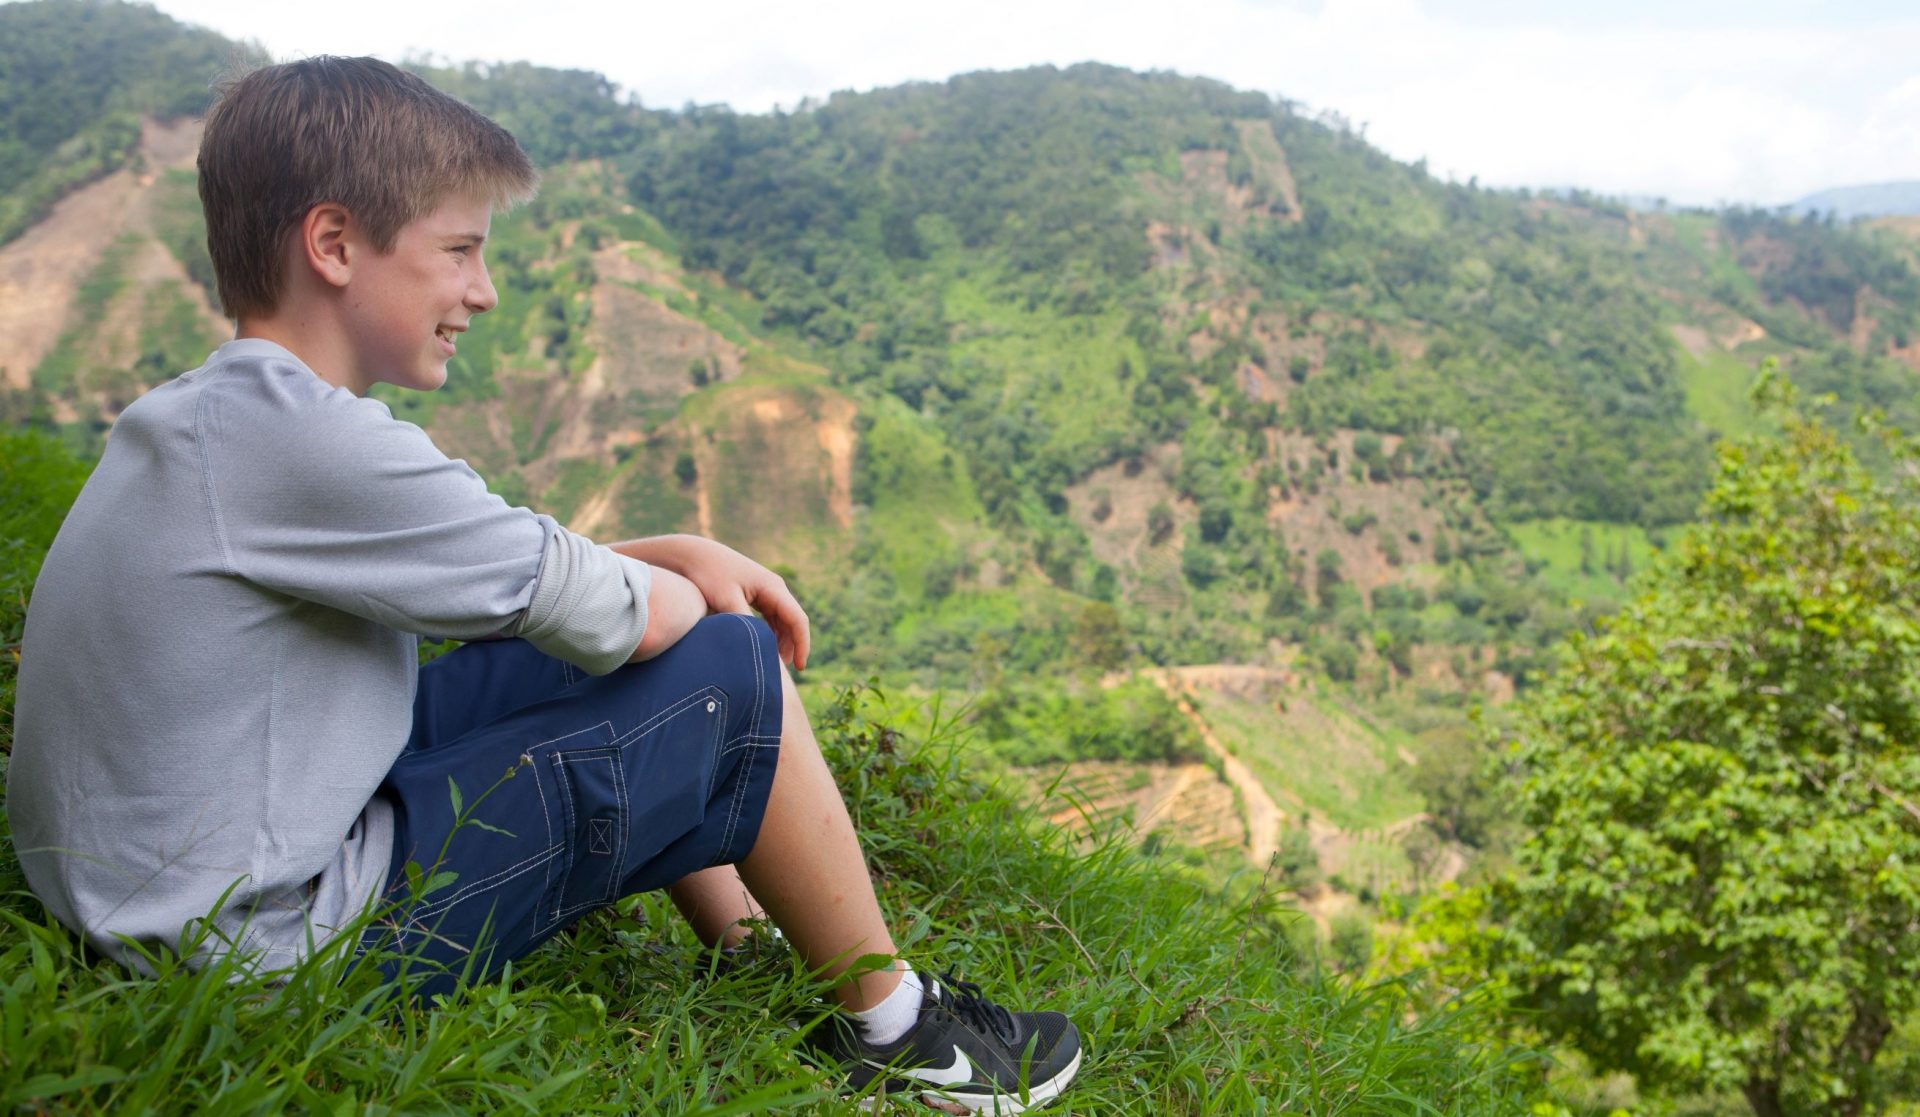 Middle school aged boy looks at vista of Costa Rican fields